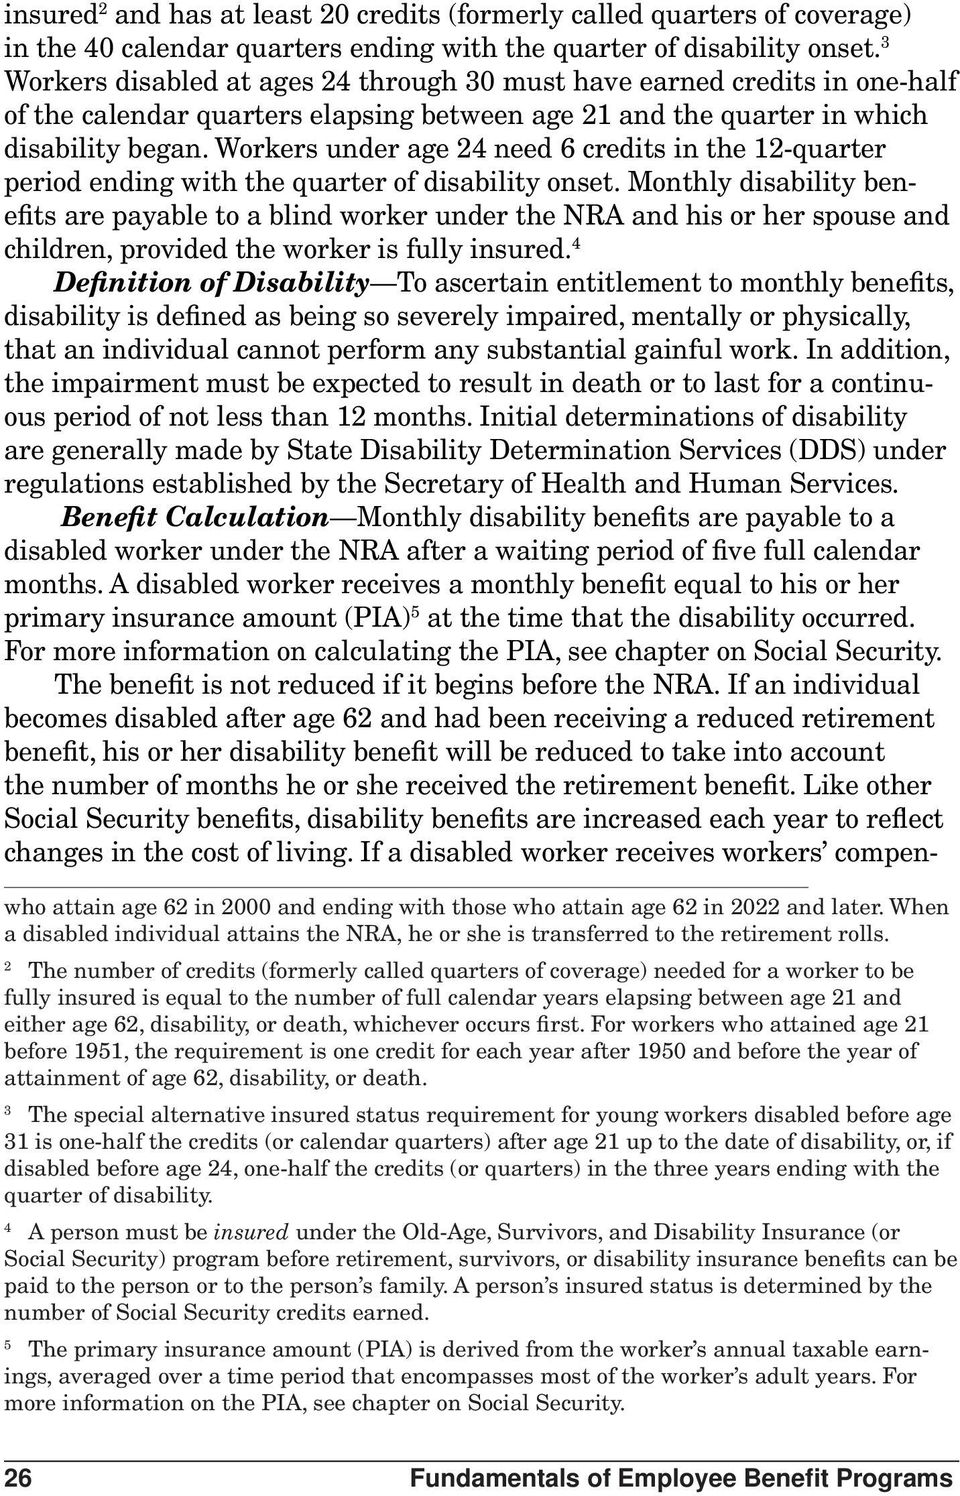 Workers under age 24 need 6 credits in the 12-quarter period ending with the quarter of disability onset.